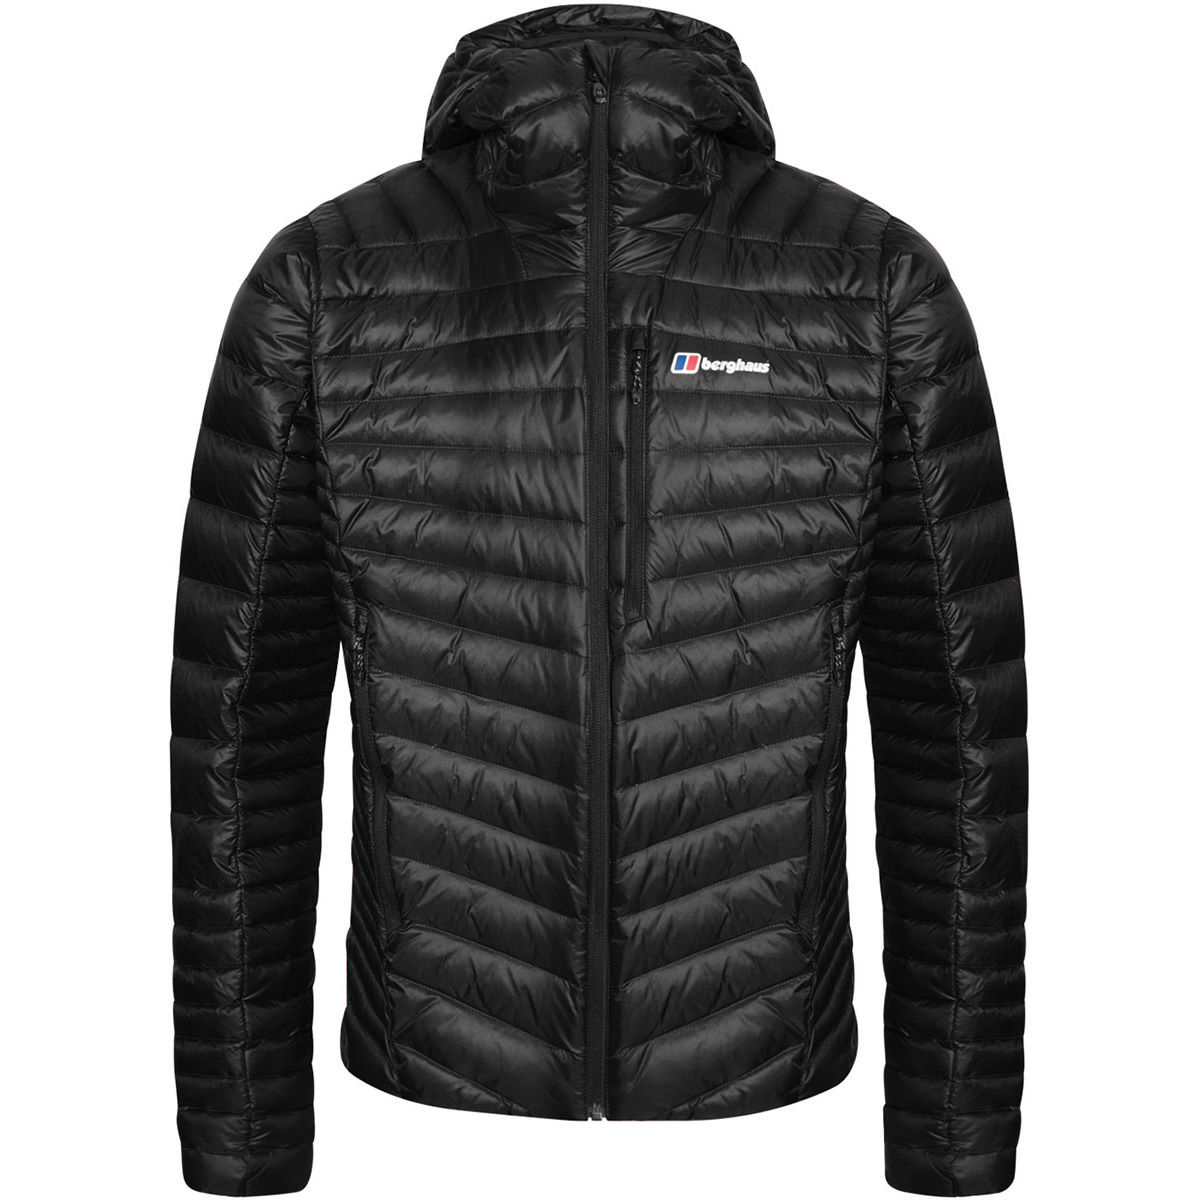 Berghaus Berghaus Extrem Micro Down Insulated Jacket   Jackets